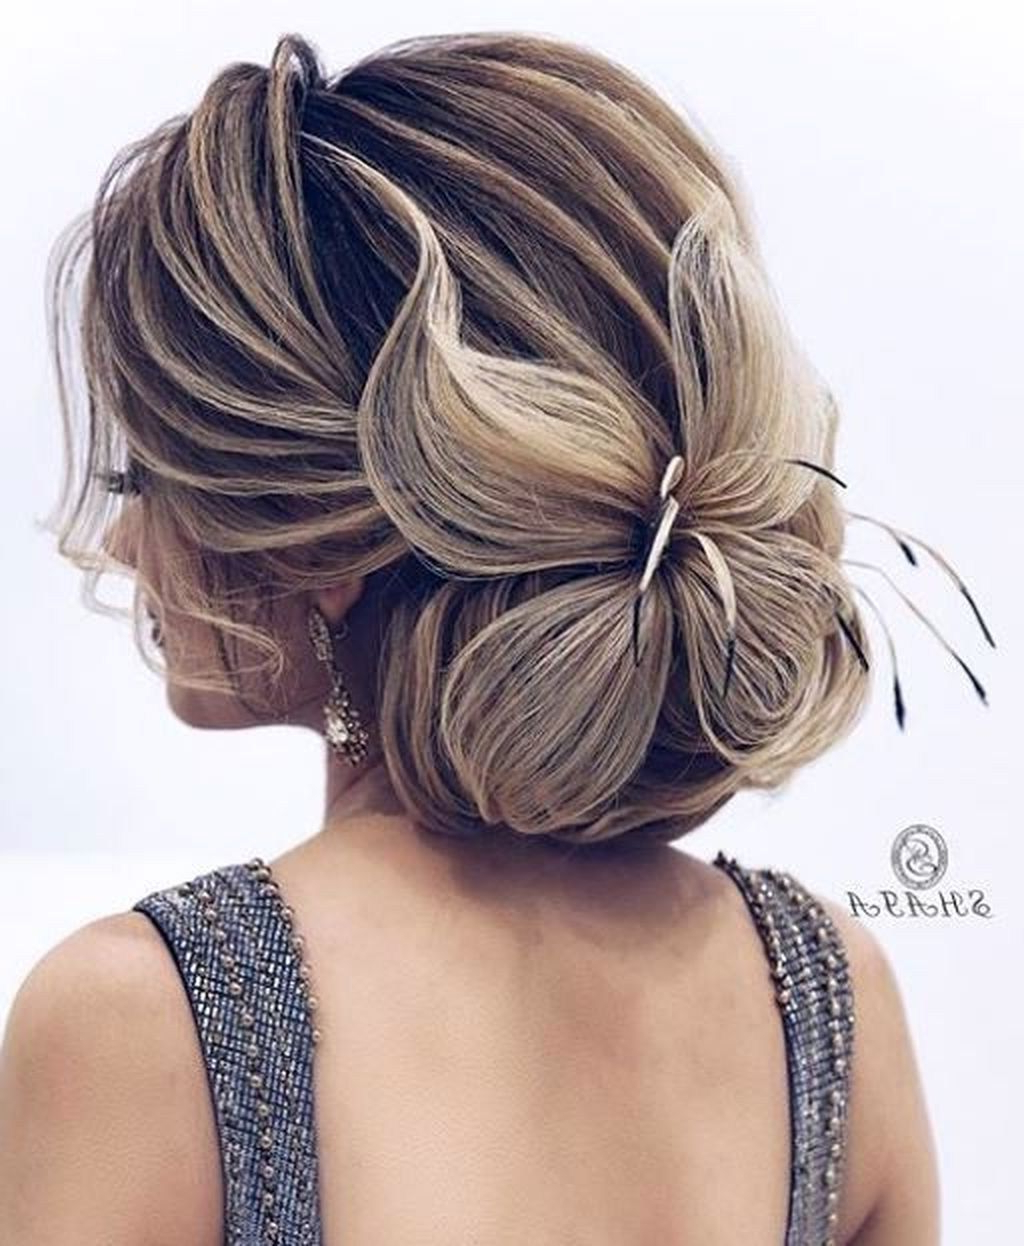 30+ Beautiful Wedding Updo Hairstyle Ideas (View 5 of 20)